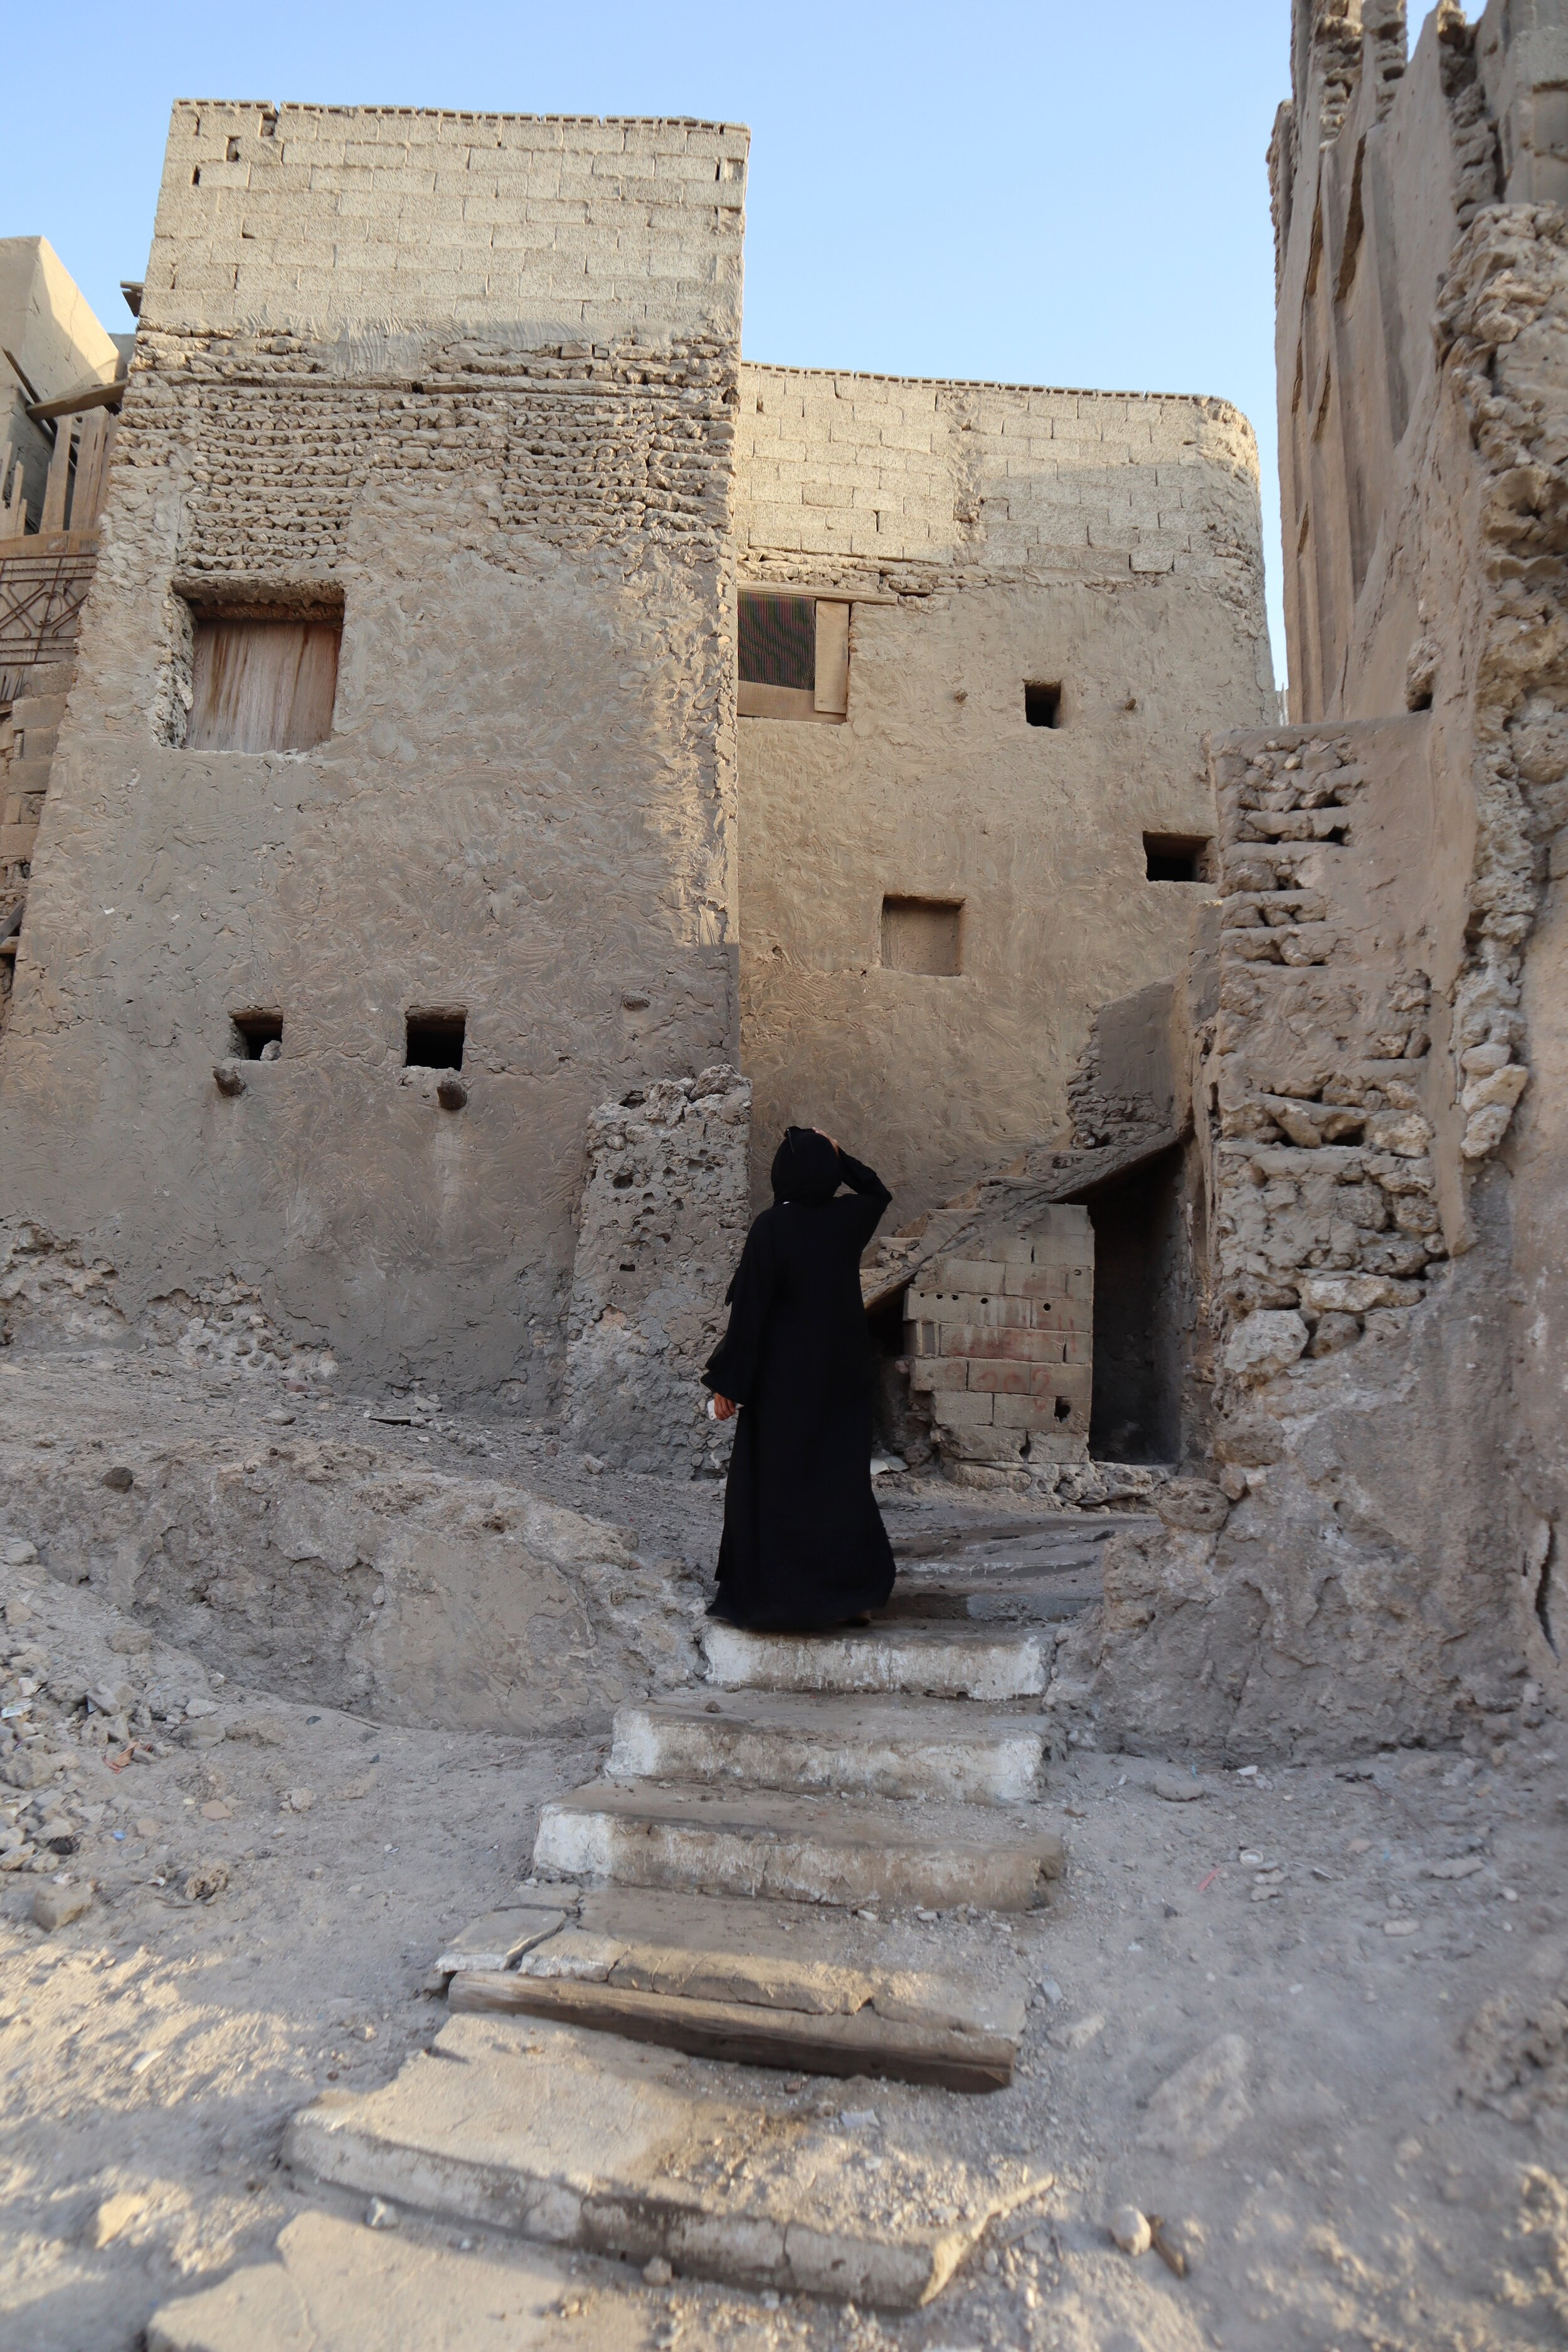 Historical remains in East Saudi